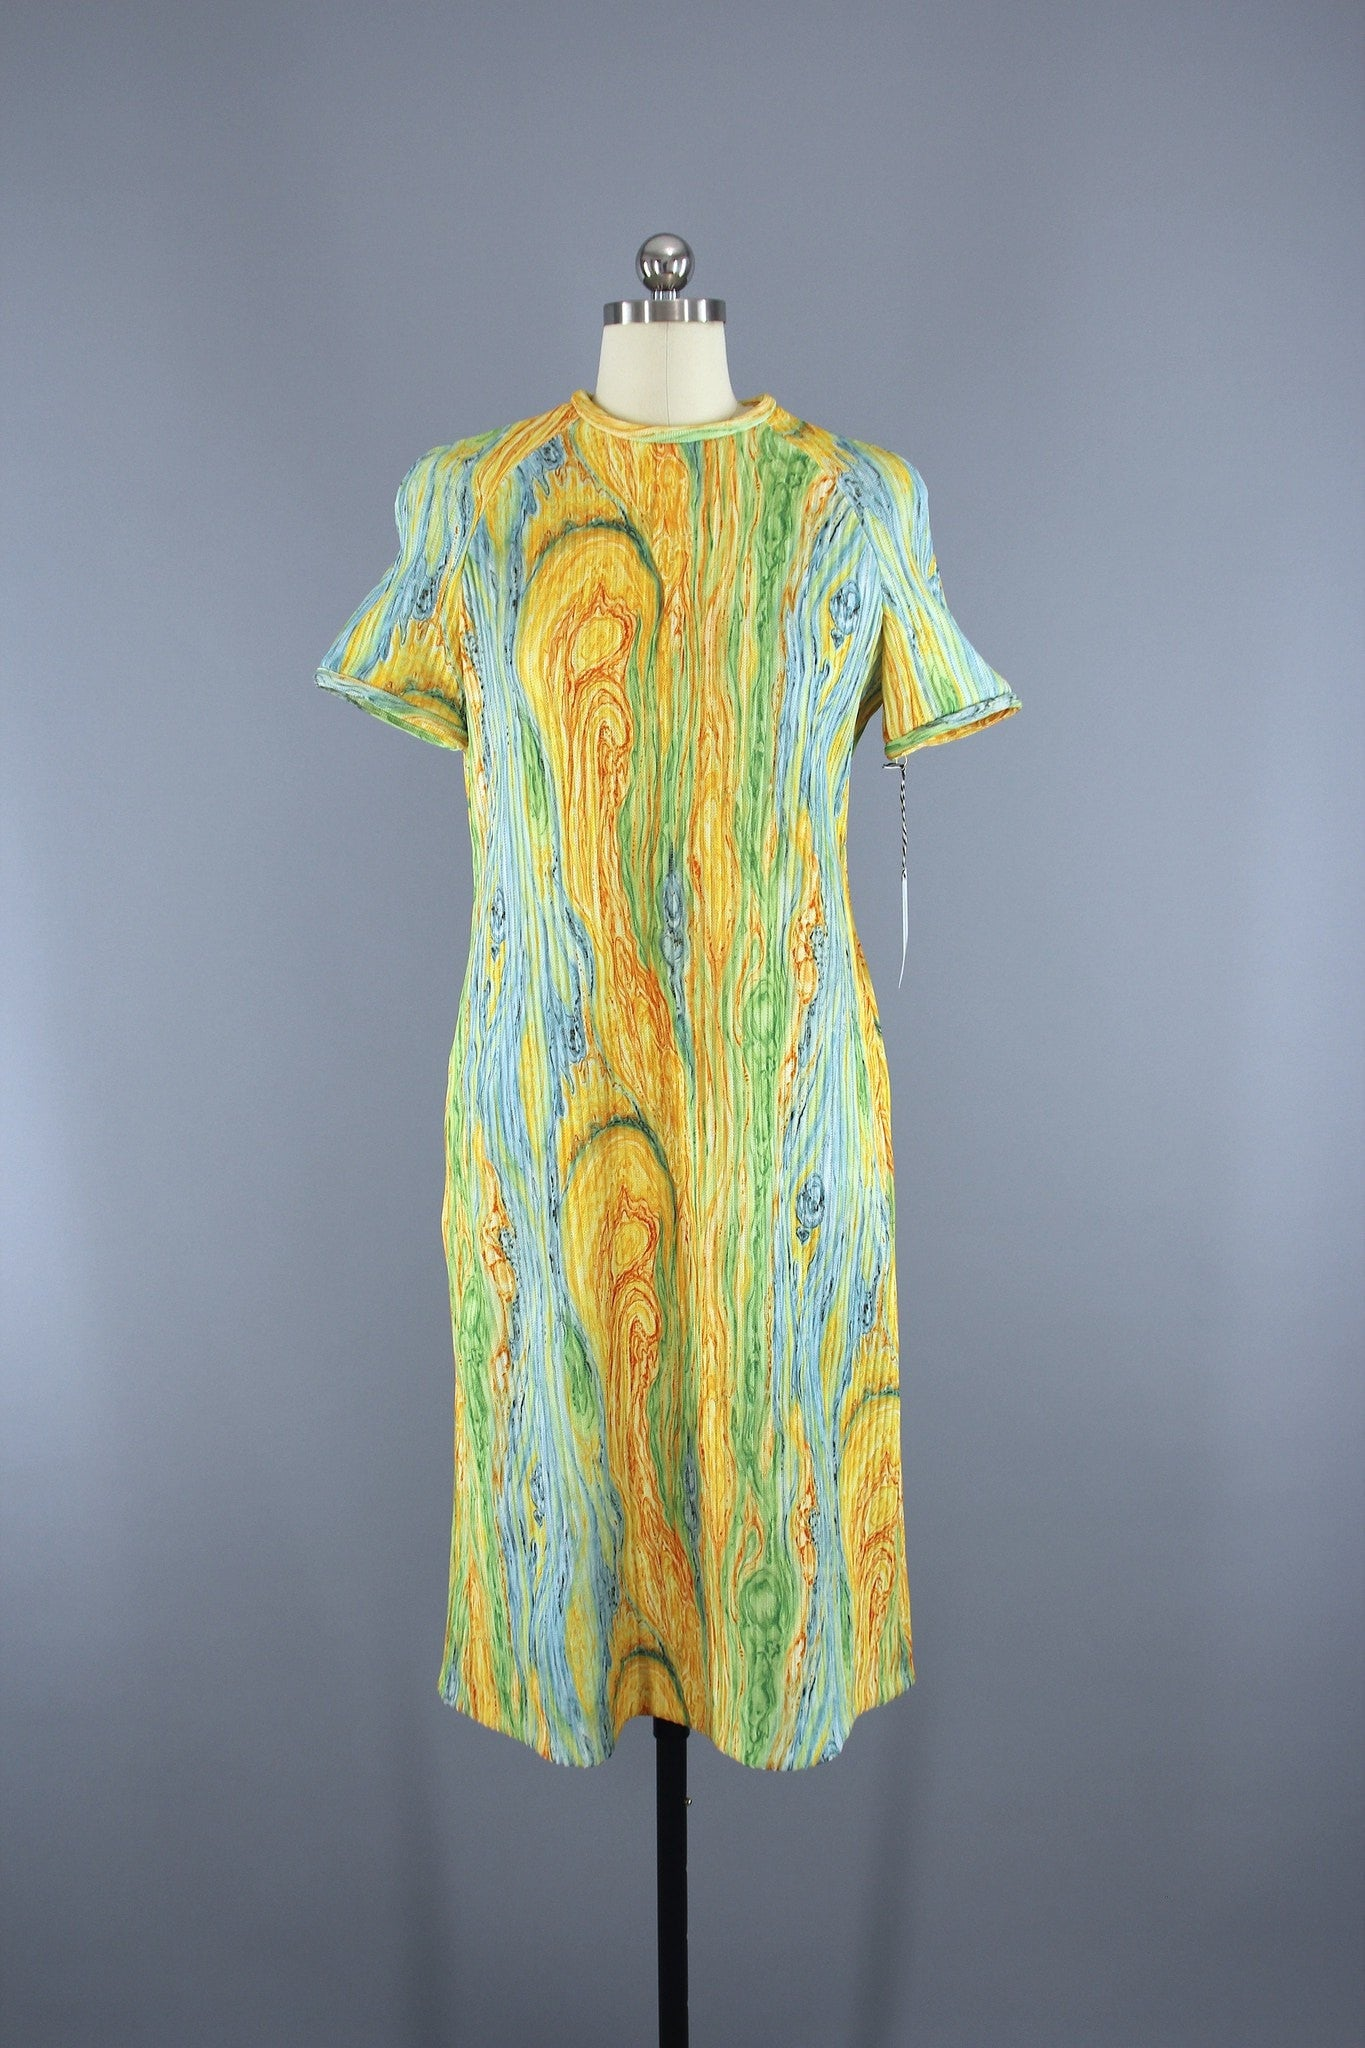 Vintage 1960s Knit Sweater Dress in Yellow Aqua Psychedelic Swirl / Leslie Fay Dress ThisBlueBird